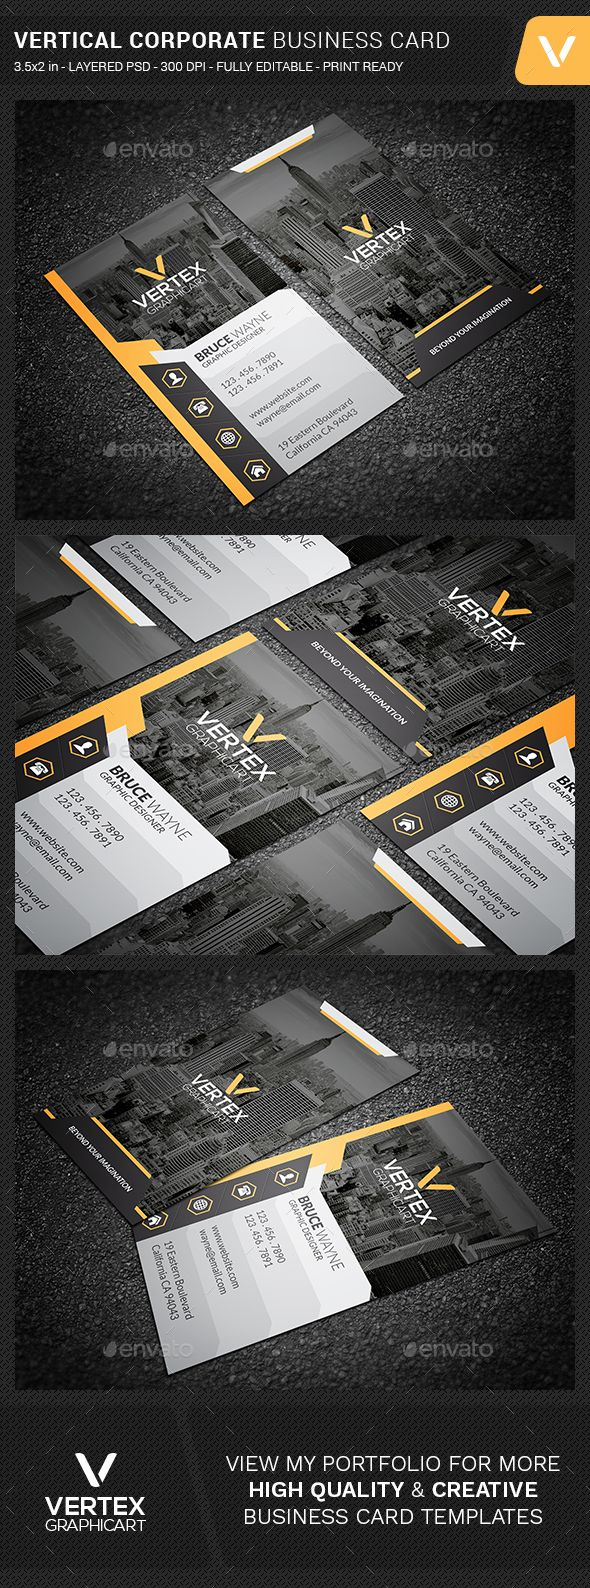 415 Best Ea I Images On Pinterest Business Card Design Templates